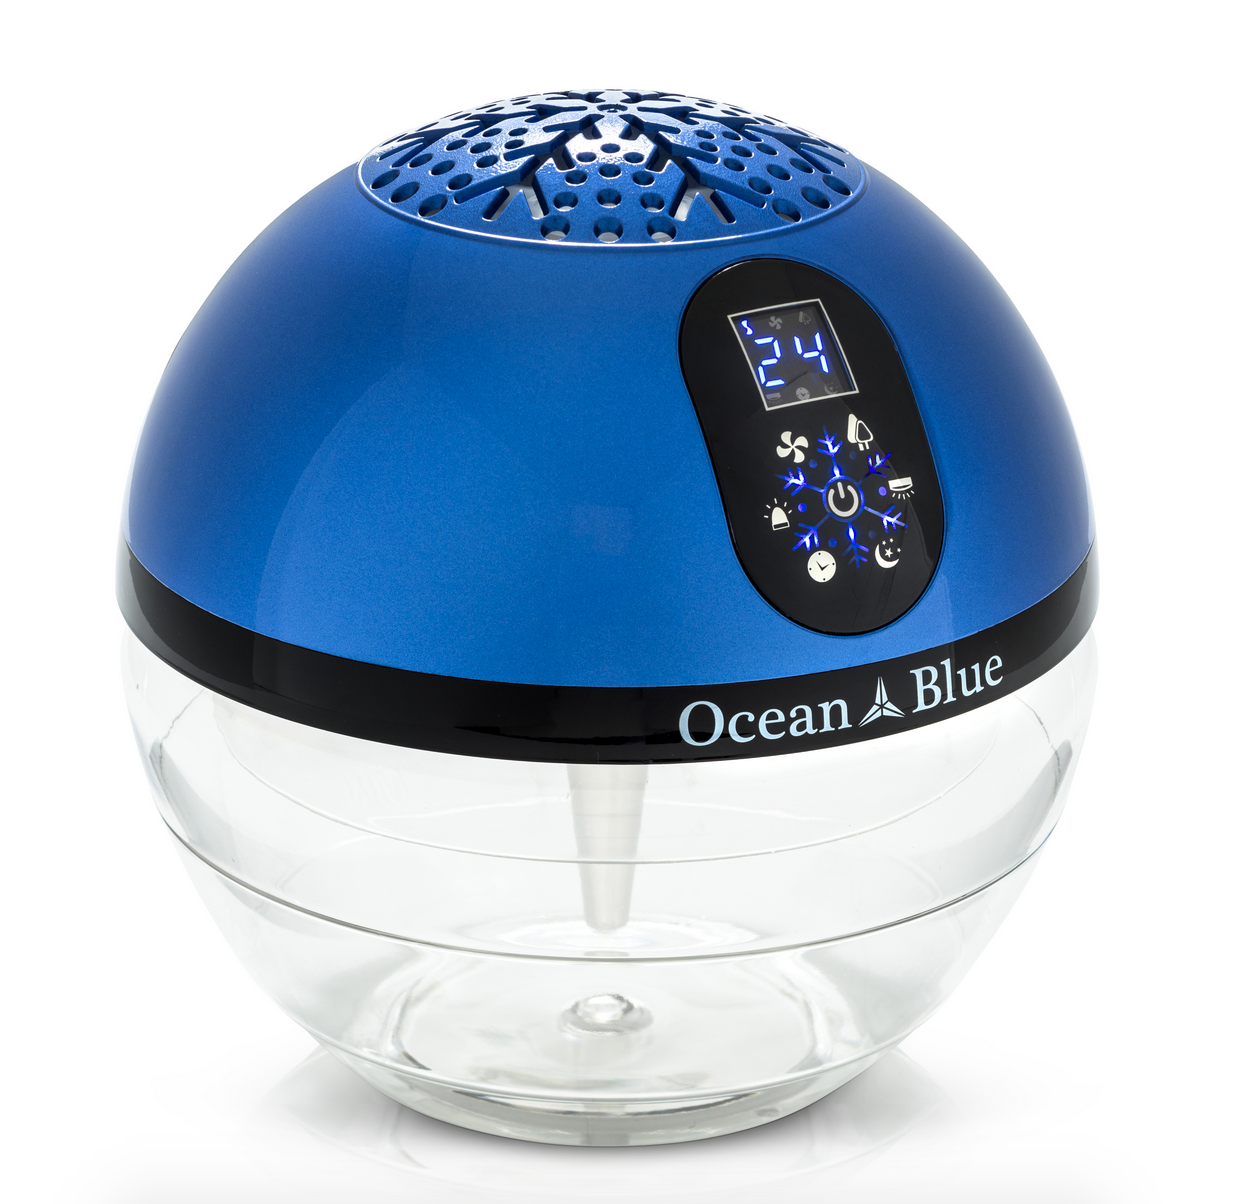 Ocean Blue Water Based Air Purifier Humidifier and Aromatherapy Diffuser with LED Screen